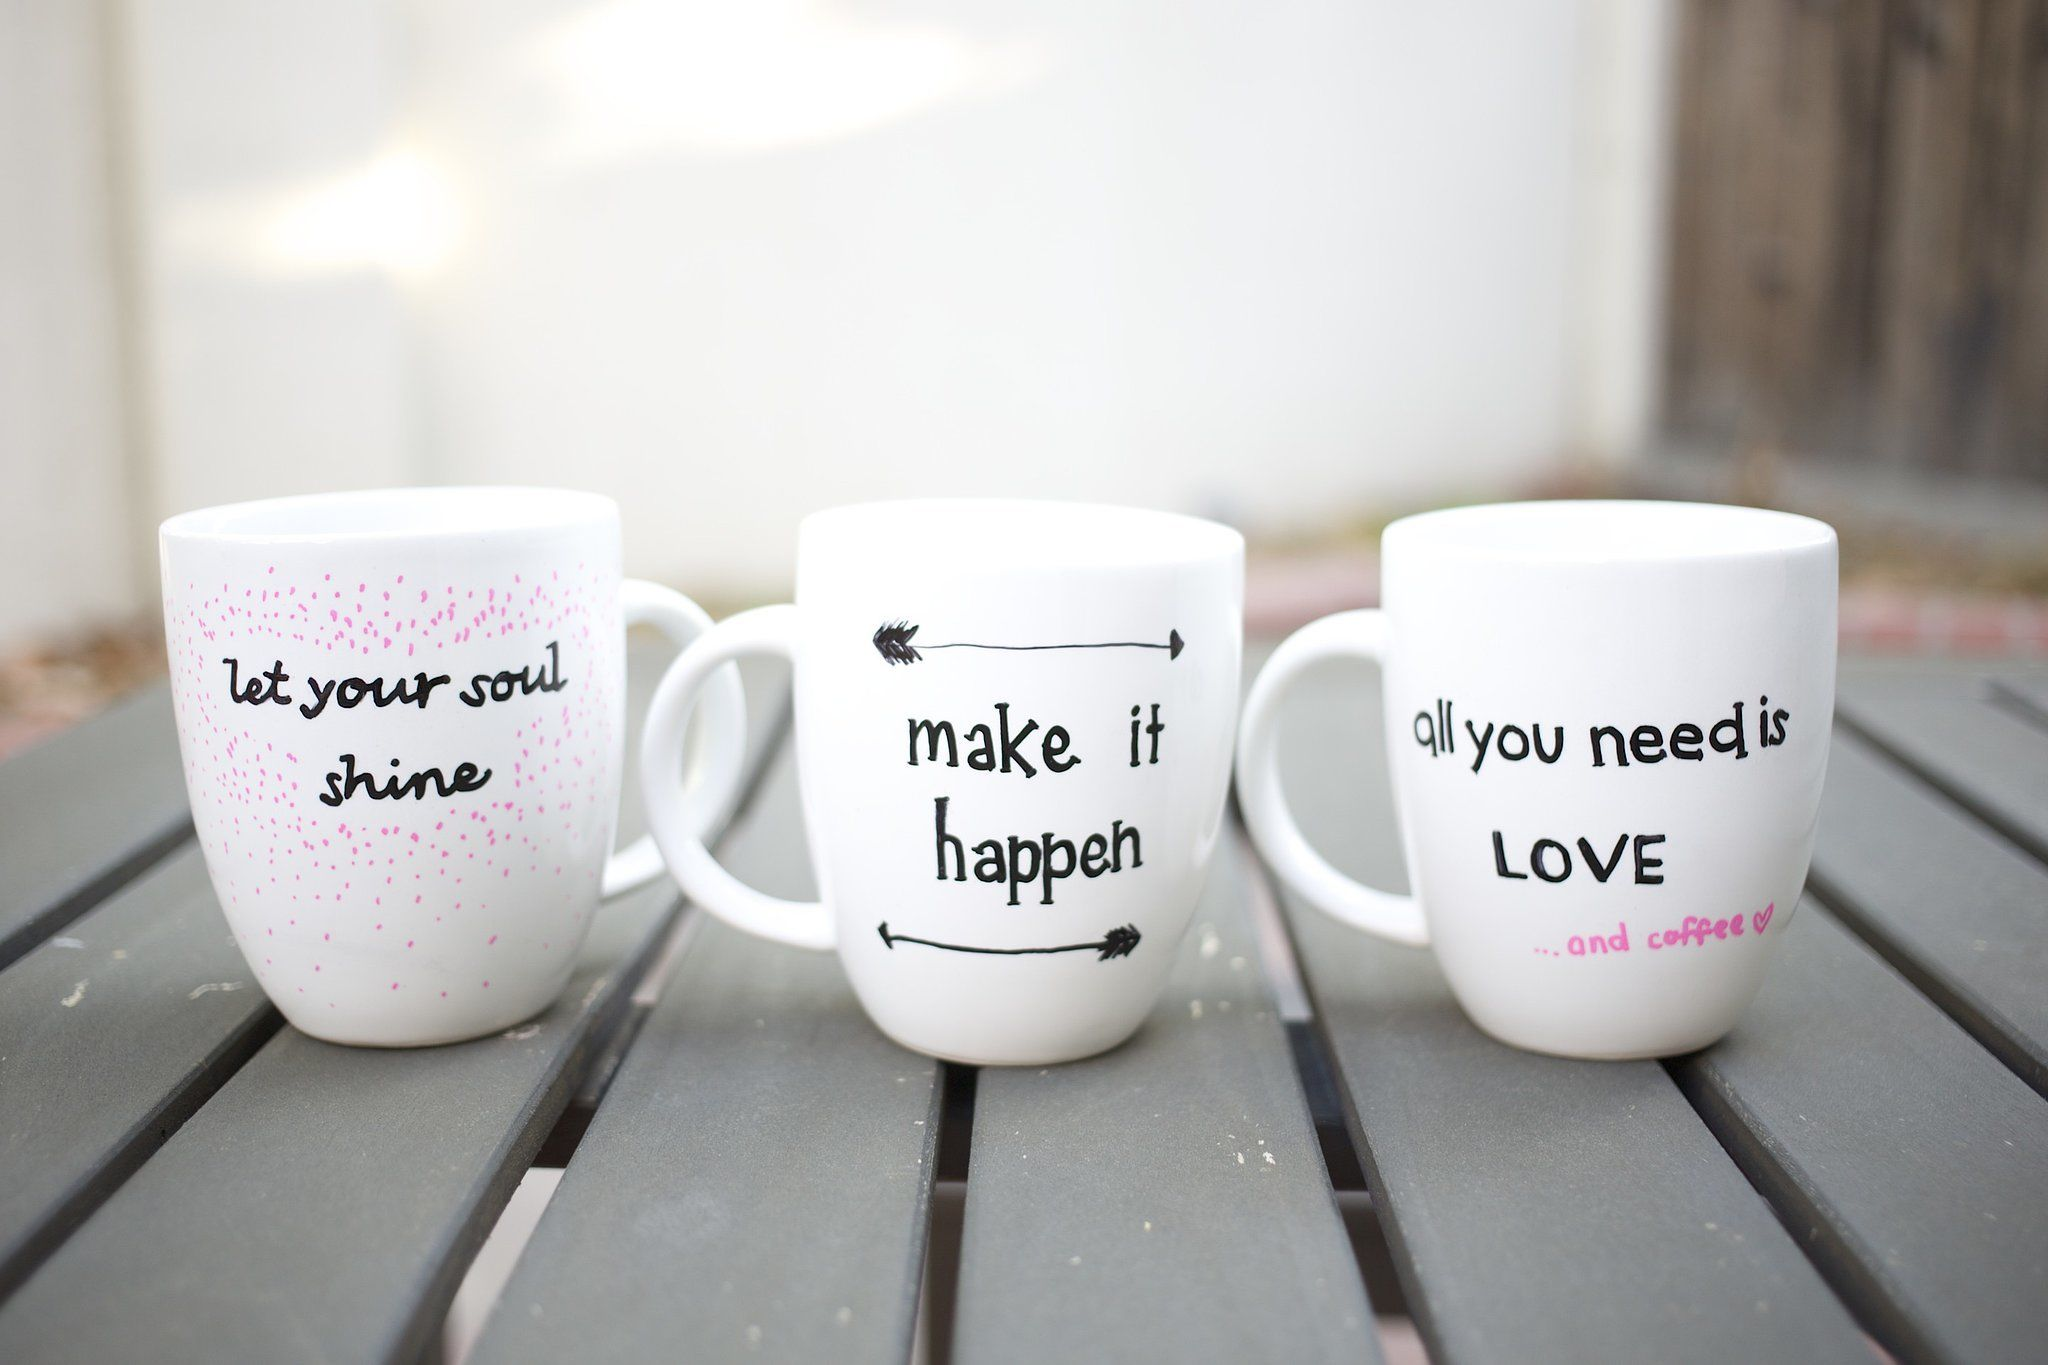 Teekanne Kaufen Quote Stenciled Sharpie Mugs Pictures, Photos, And Images